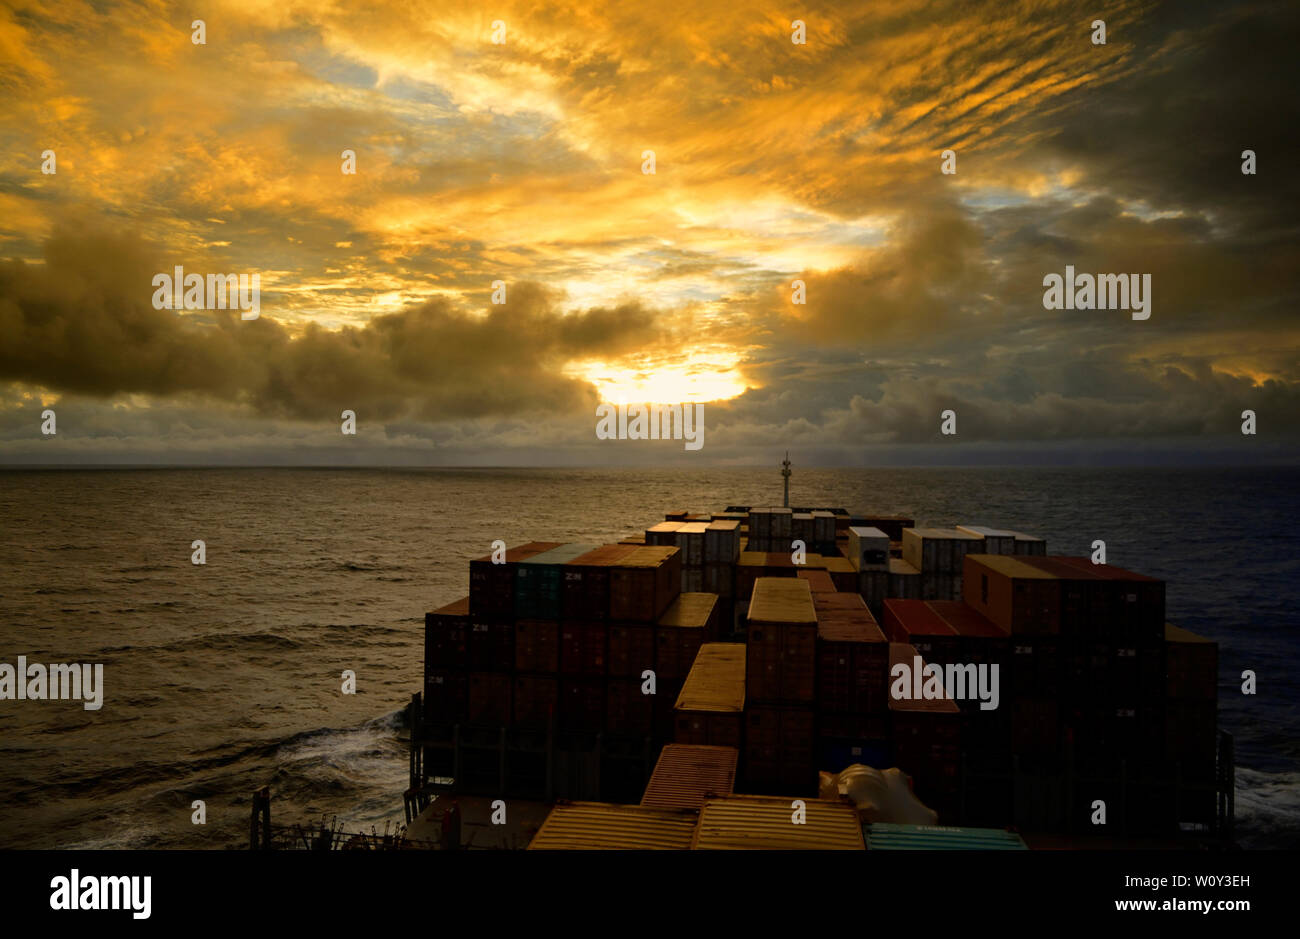 south atlantic ocean 04.59 n  050.38 w, international waters -   - january 12, 2014:  view onto sea and deck stowed containers of the german container - Stock Image